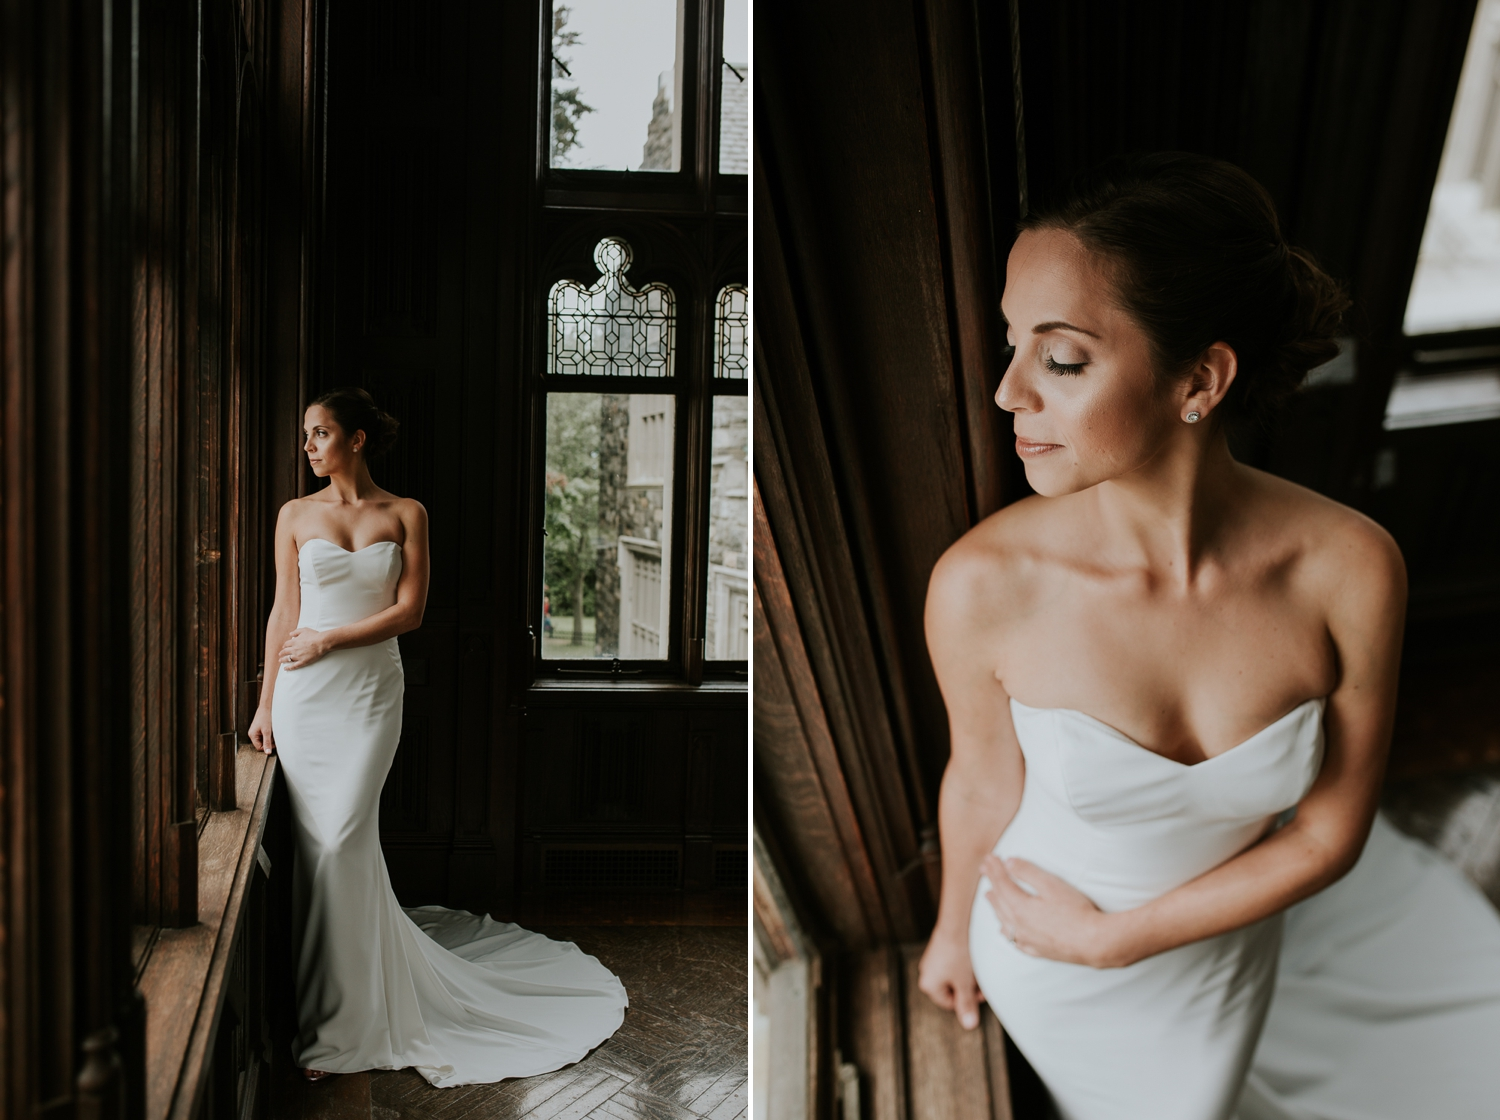 hempstead_house_new_york_wedding_photographer 15.jpg